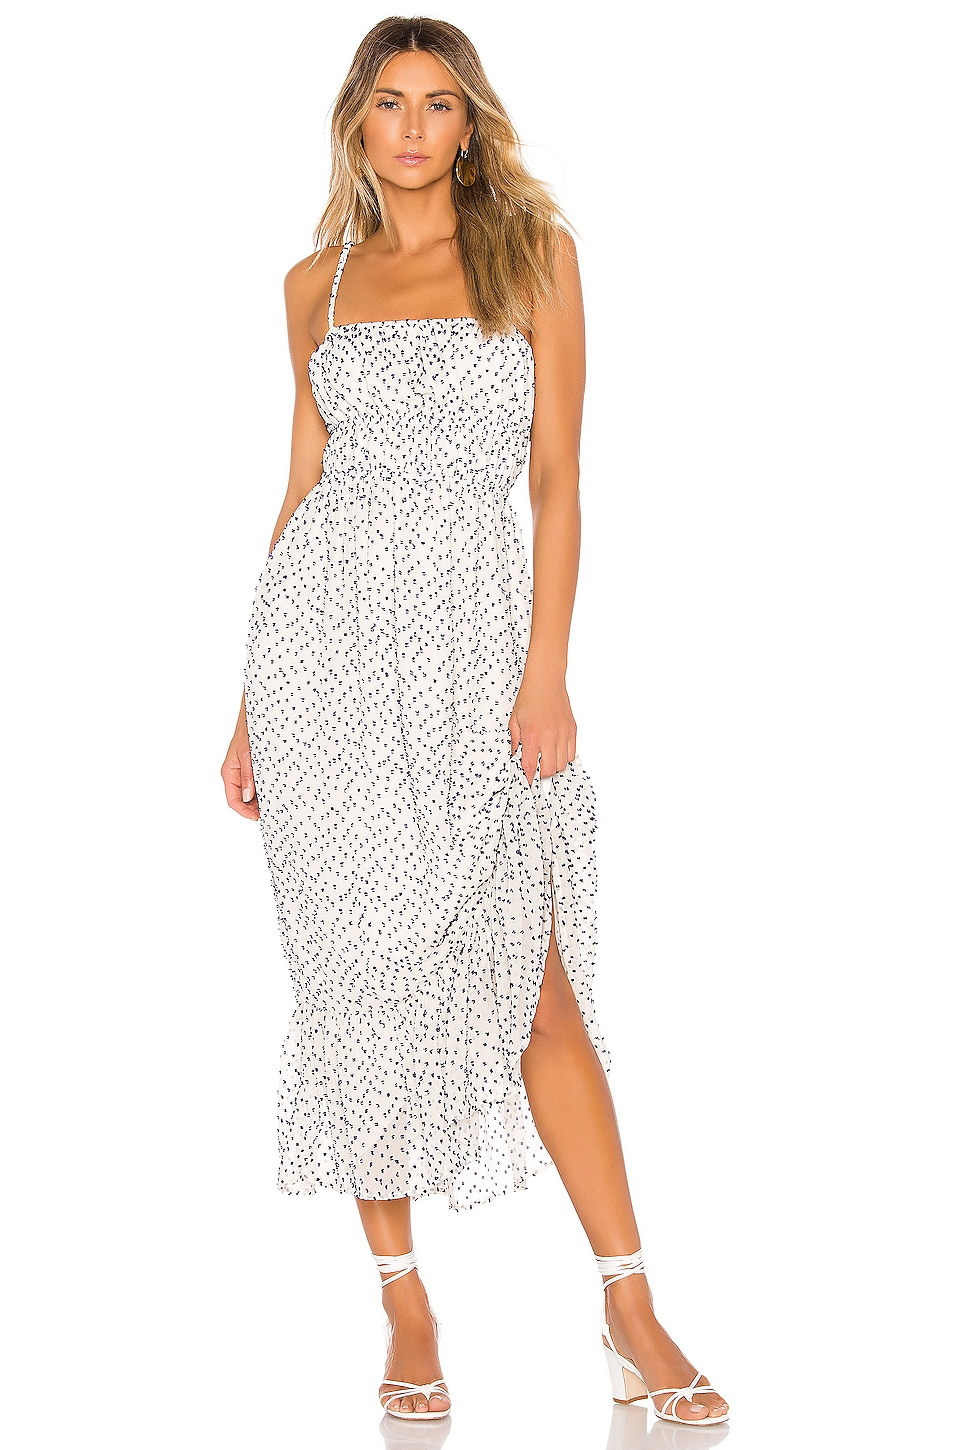 House of Harlow 1960 X REVOLVE Julia Maxi Dress in White & Navy